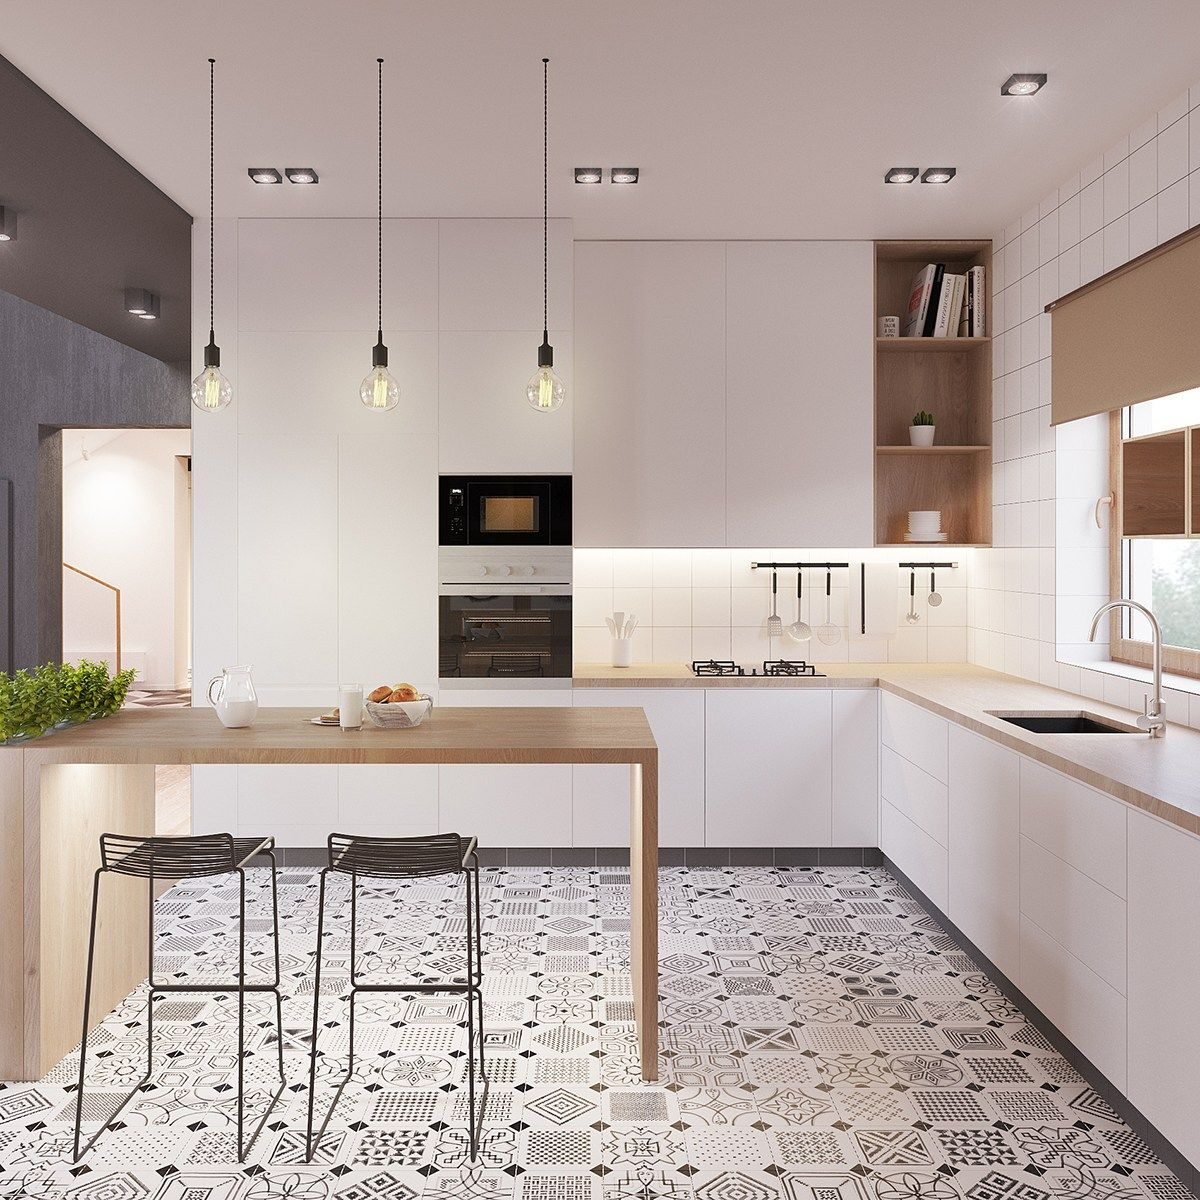 Scandinavian Floor Tiles Eclectic Scandinavian Kitchen Floor Tiles Jpg 1 2001 200